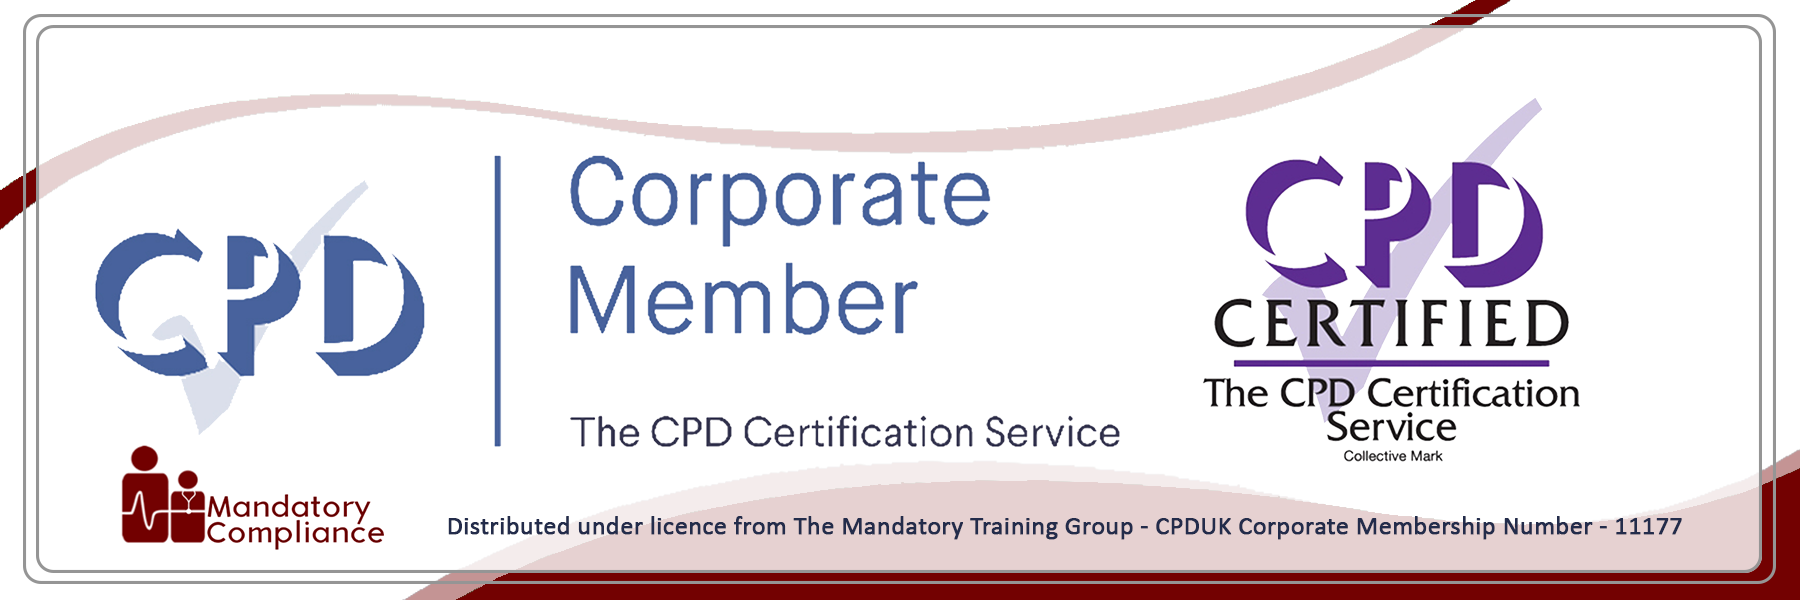 Mandatory Training for Health and Social Care Staff - Online Training Course - CPDUK Accredited -